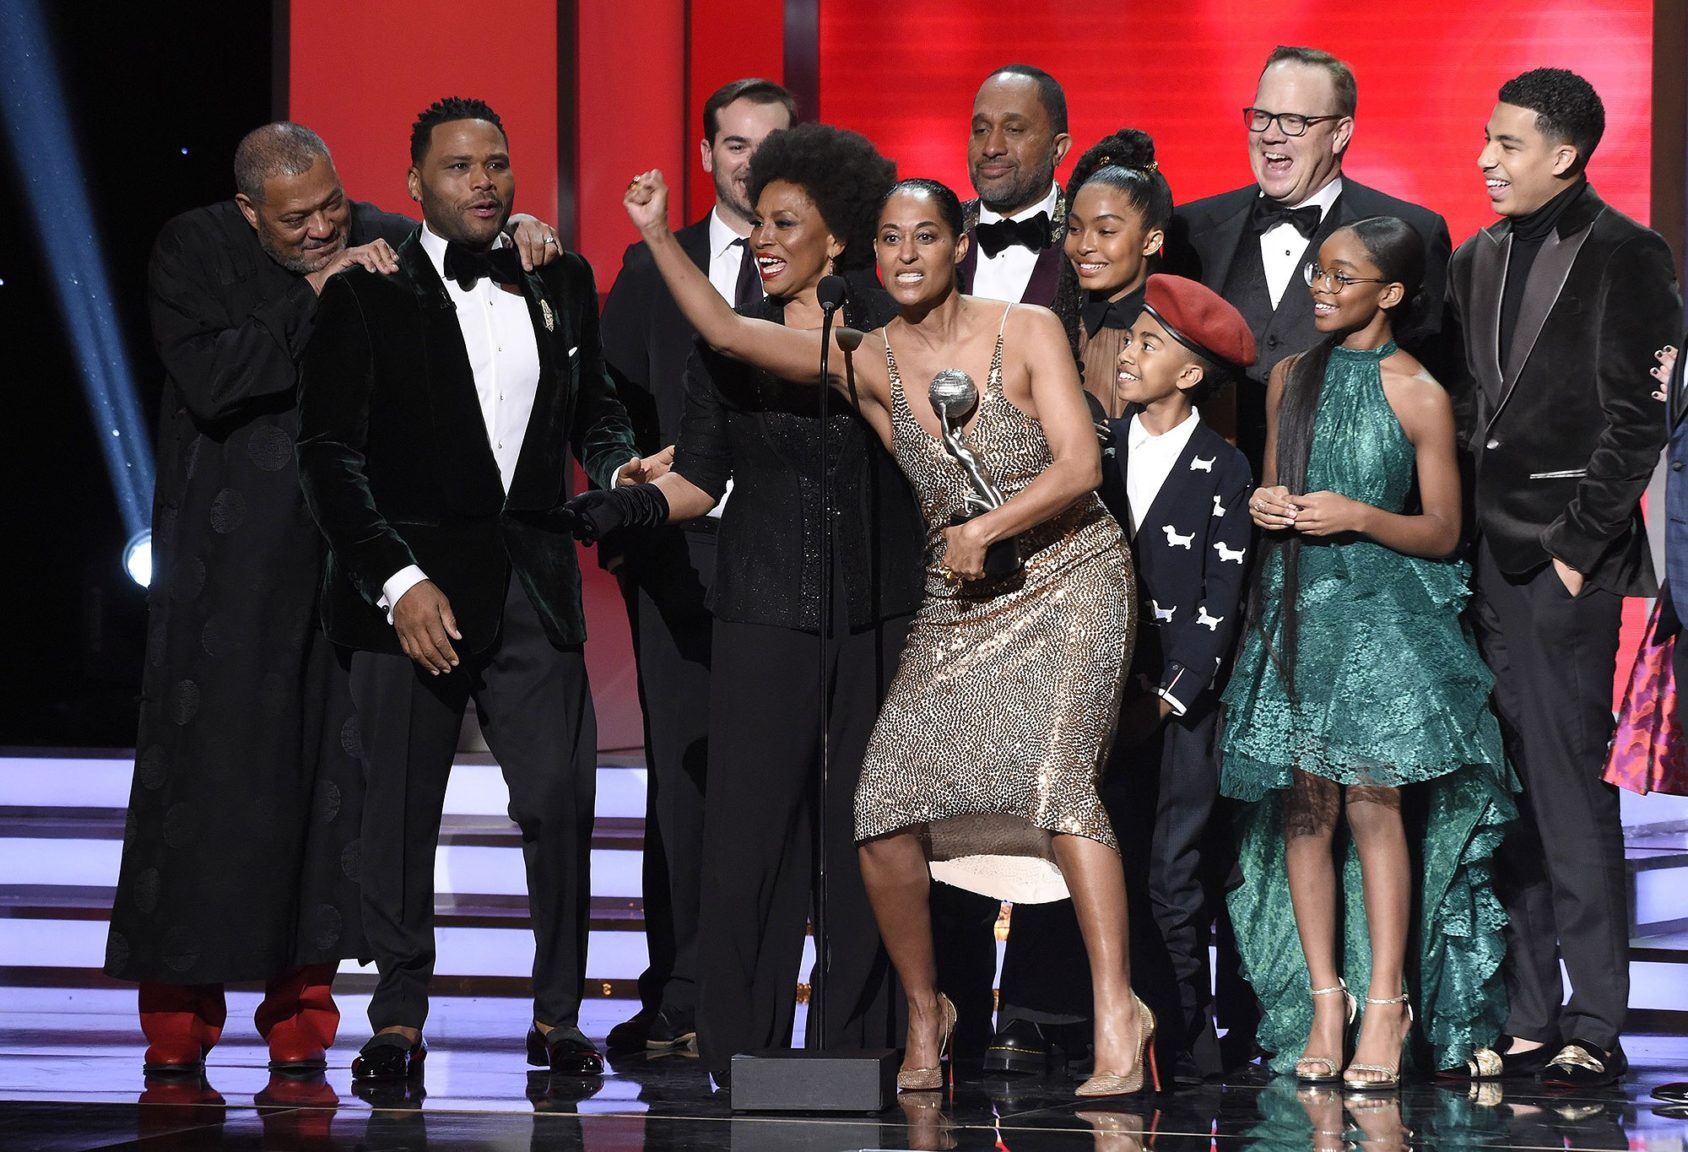 NAACP Image Awards support #TimesUp and encourage voting